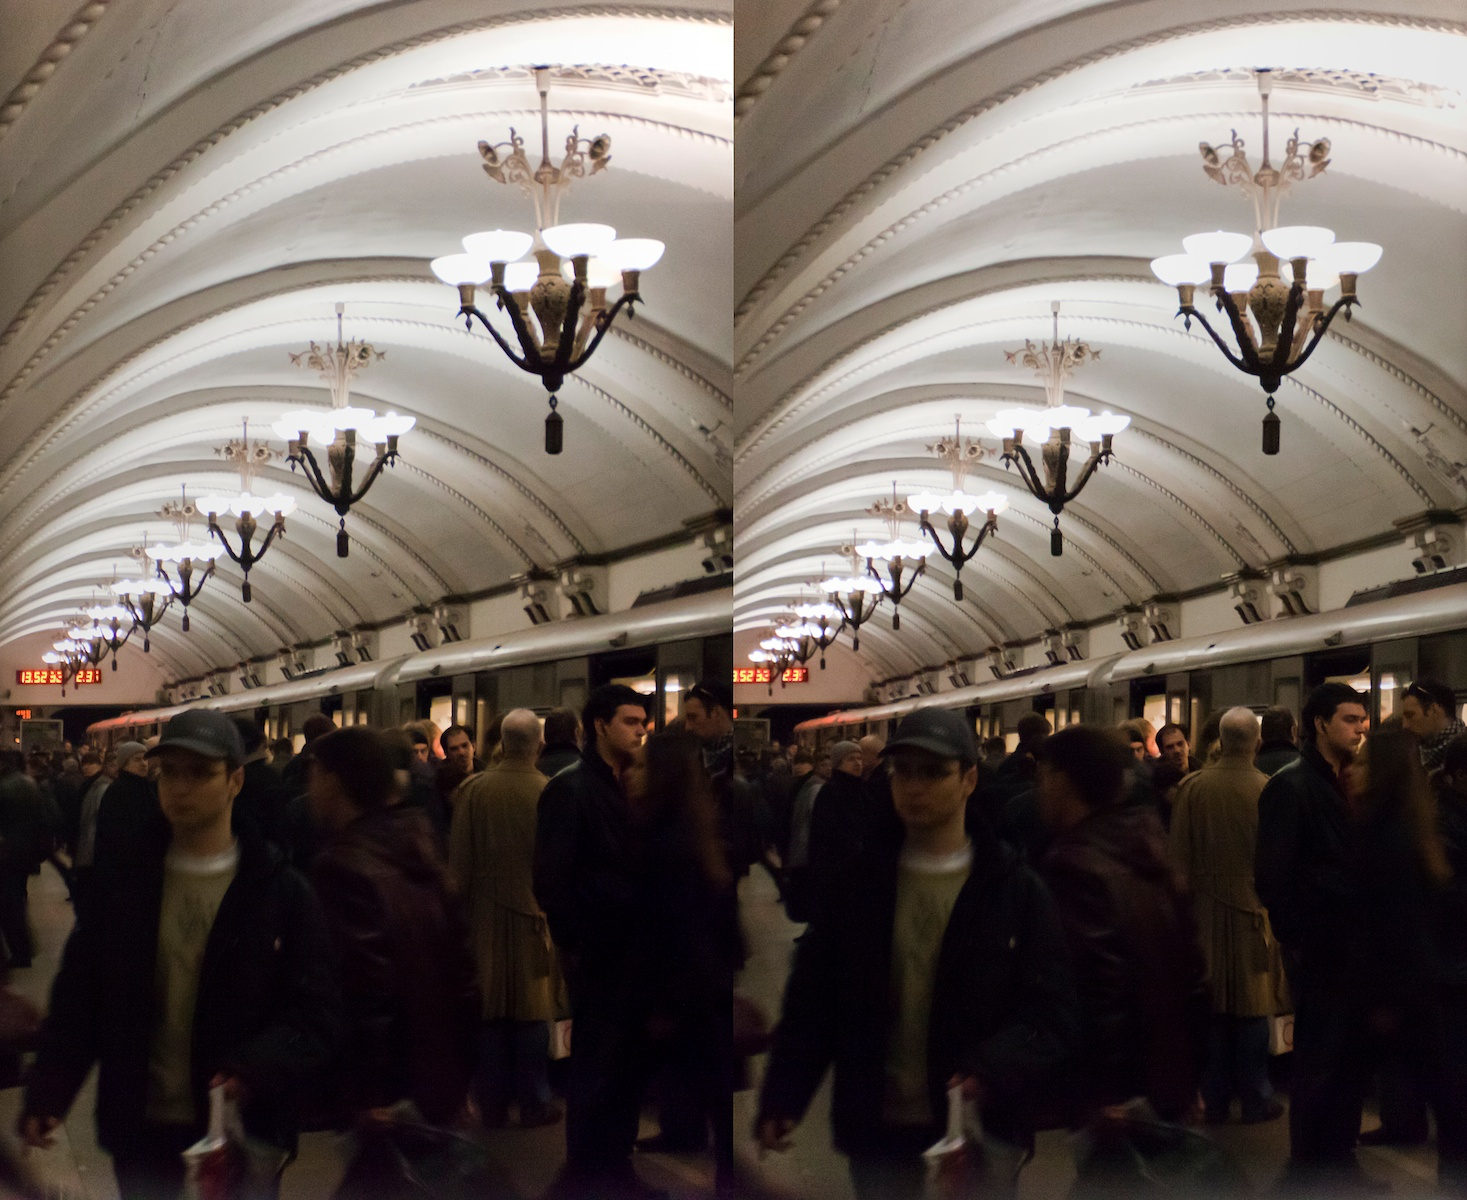 2011 стерео stereo Borovitskaya metro station, Боровицкая, Shot with Loreo 3D lens In A Cap and Canon 5D mark 2